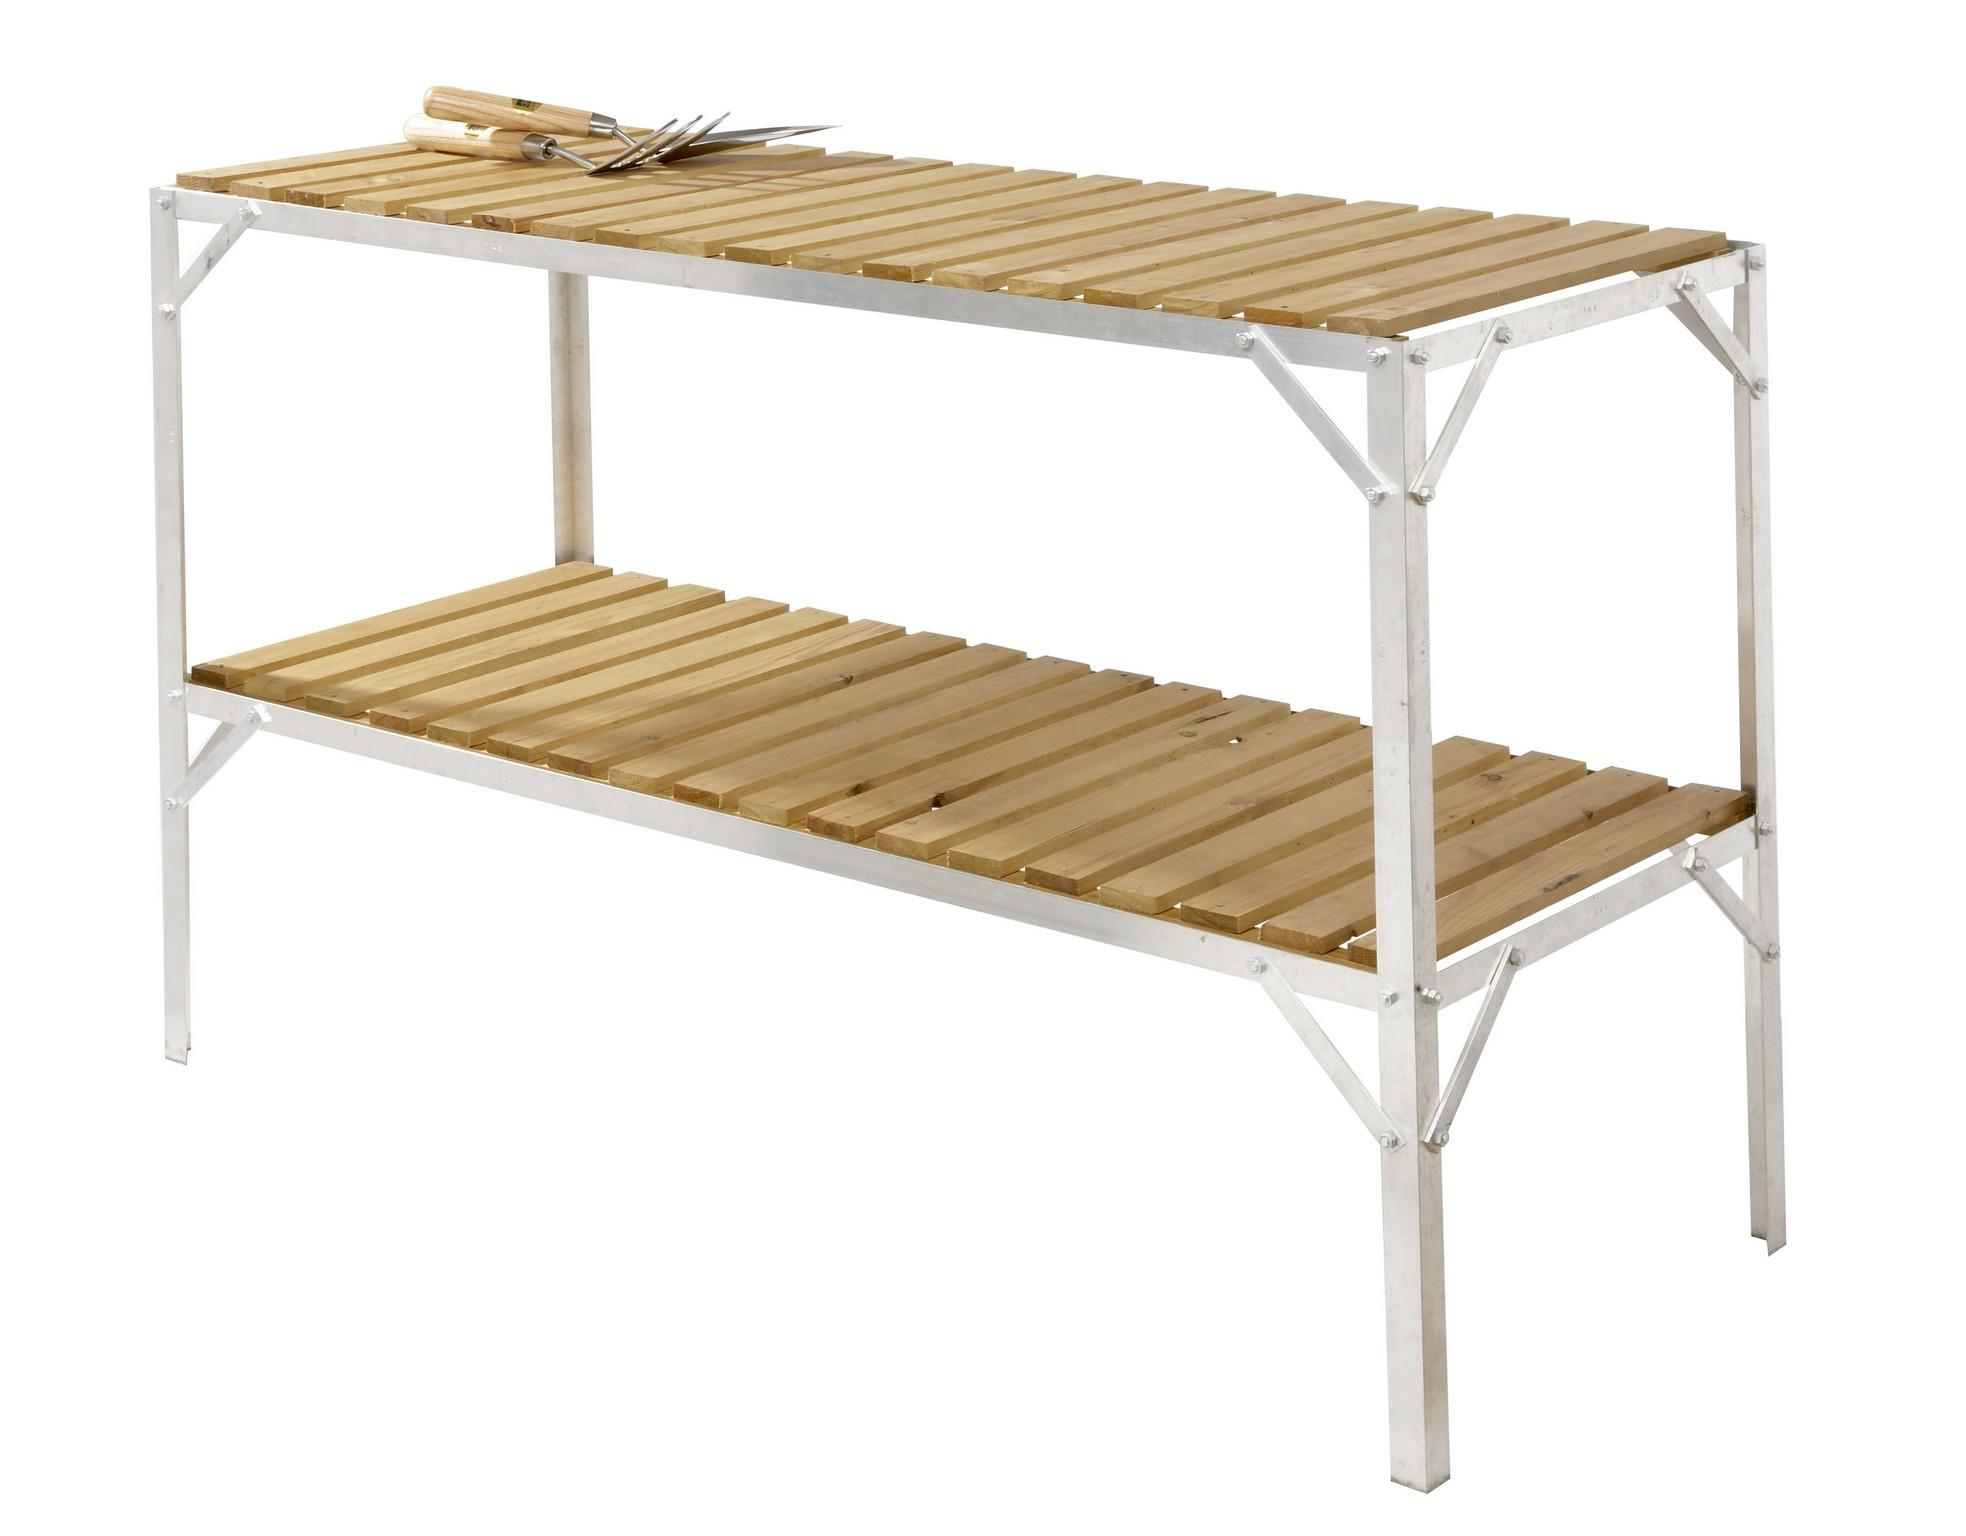 Greenhouse staging bench wooden two tier 18 wide x 4ft - Wooden staging for greenhouse ...